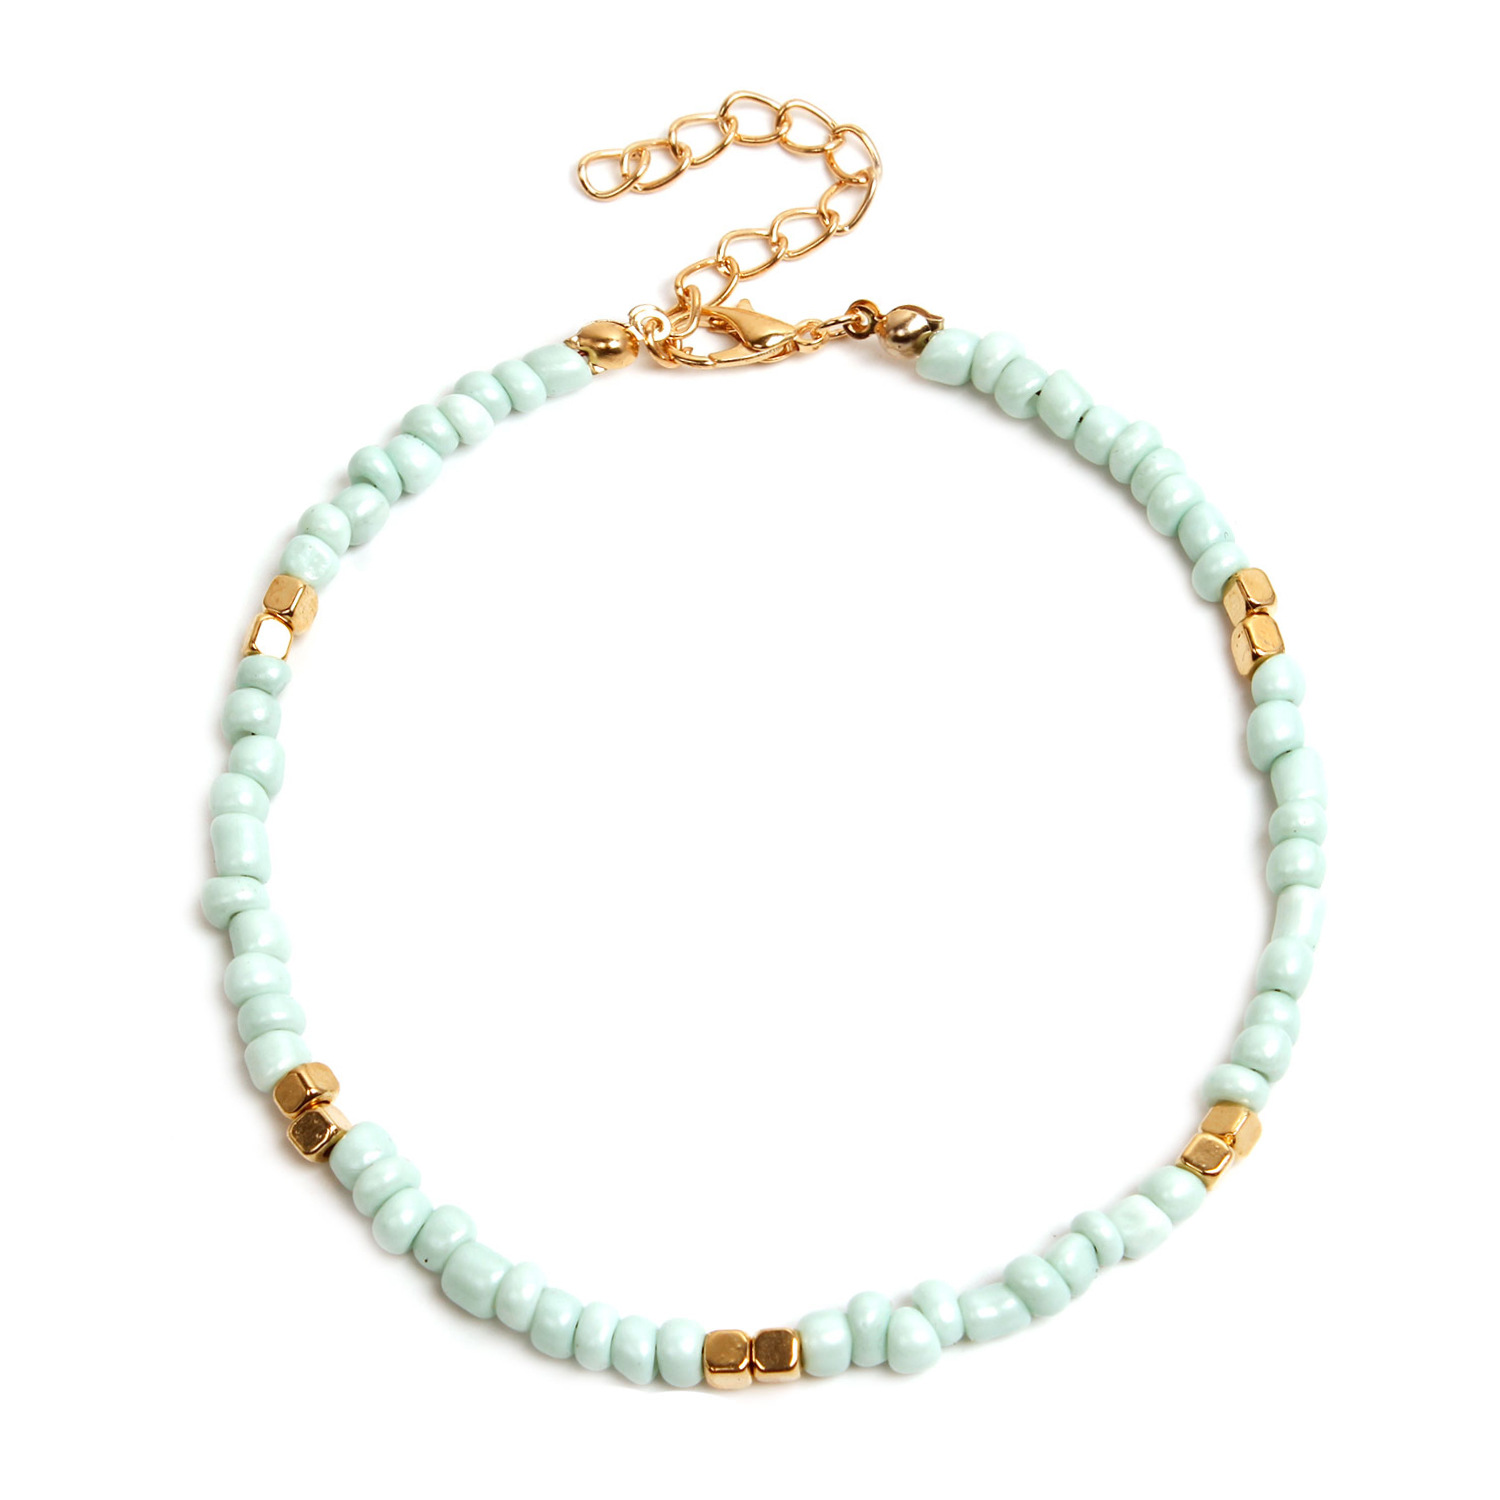 10Colors Bohemian Colorful Crystal Seed Beads Anklets for Women Summer Ocean Beach Ankle Bracelet Foot Leg Jewelry Dropshipping